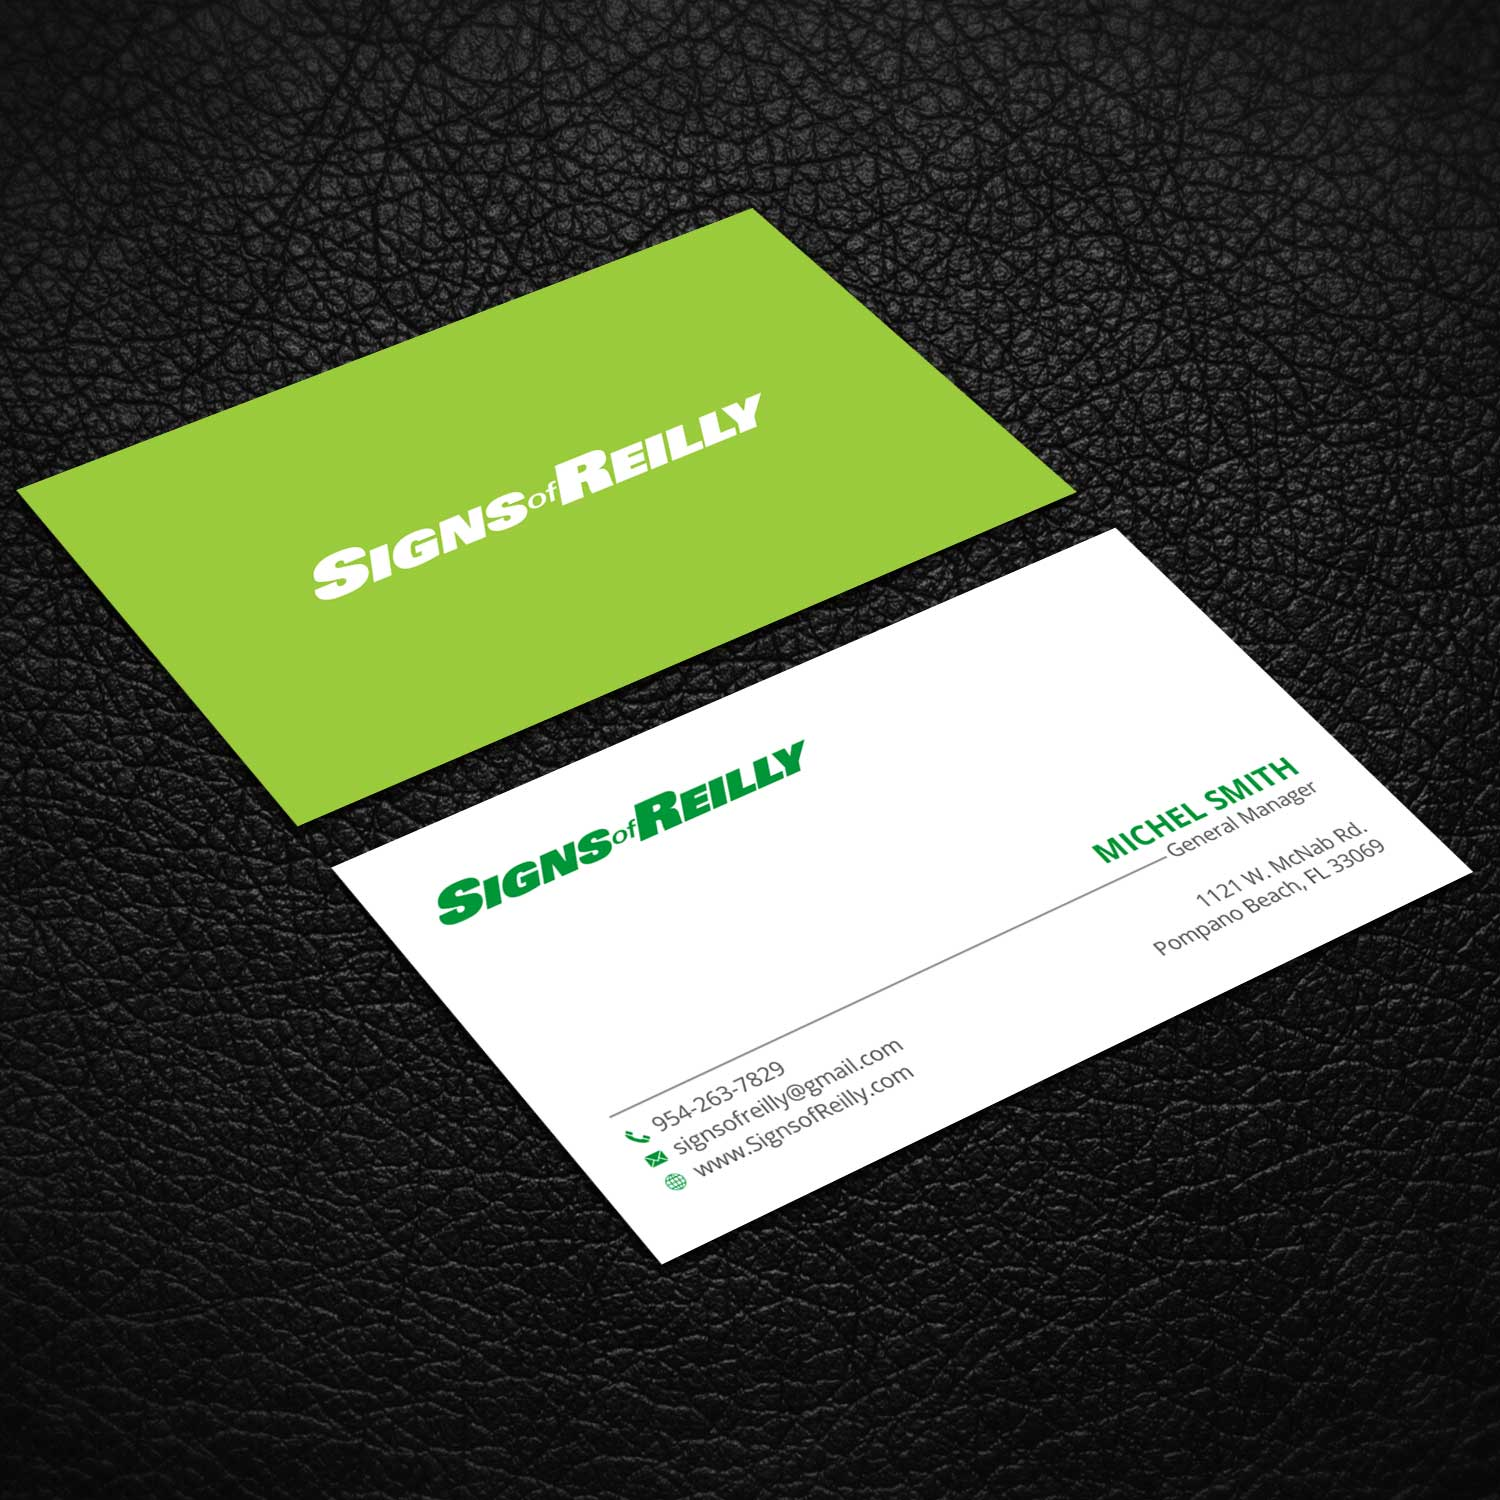 Serious professional business business card design for signs of business card design by rightd for signs of reilly design 16693590 colourmoves